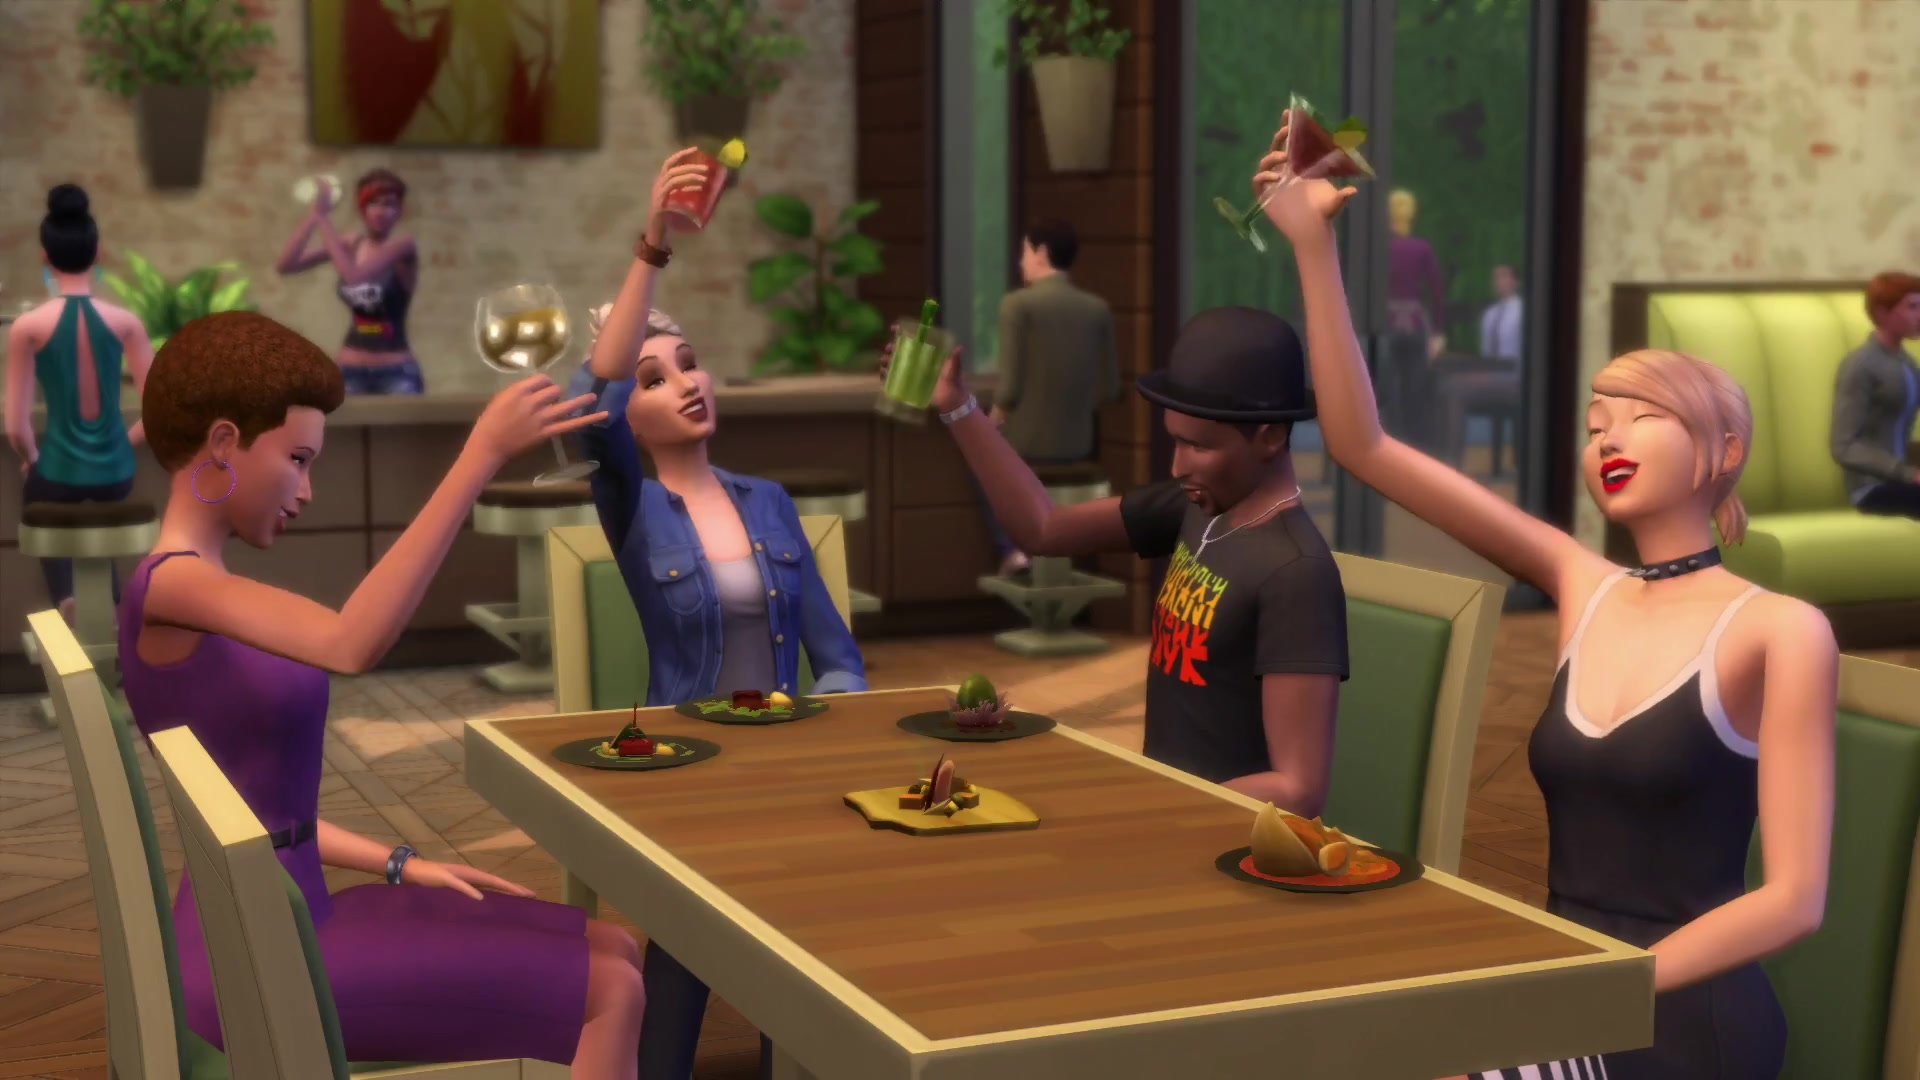 The Sims 3 Showtime Expansion Pack Live the rags to riches story with your Sims as a singer, acrobat, magician and moonlight as a DJ. New optional features allow you to share these experiences with your friends through in-game news feeds, messaging, and live updates.